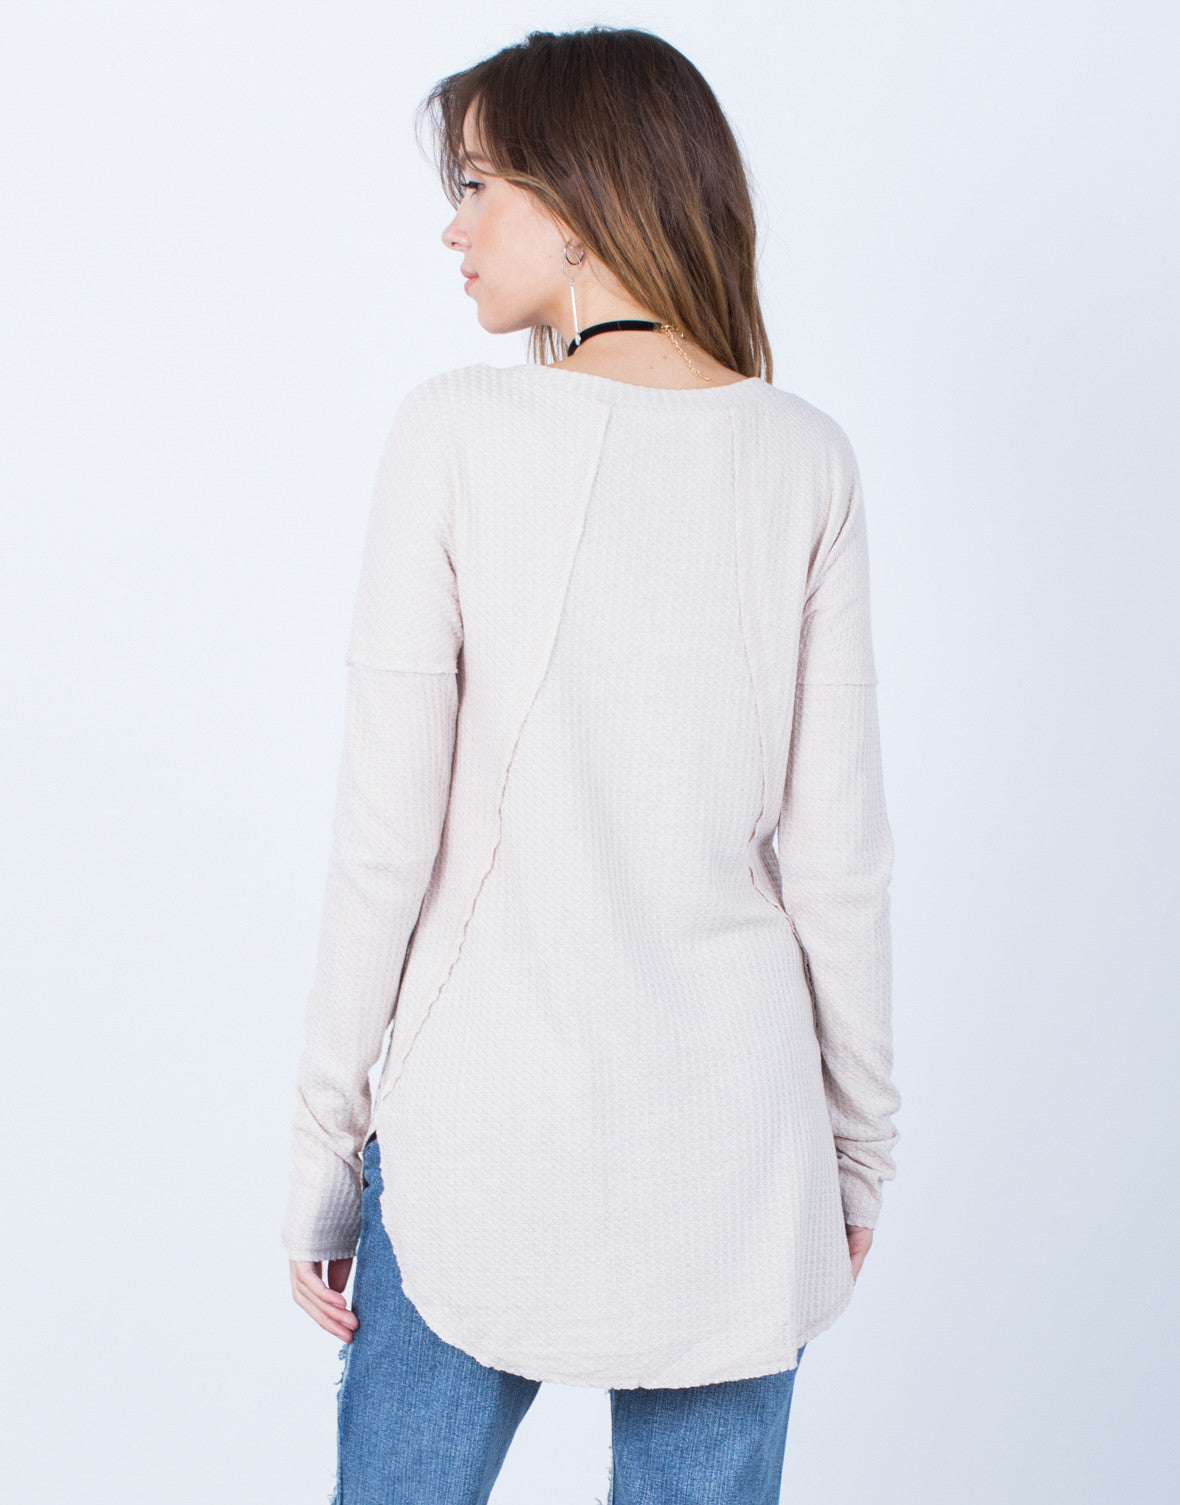 Back View of Laid-Back Sweater Top